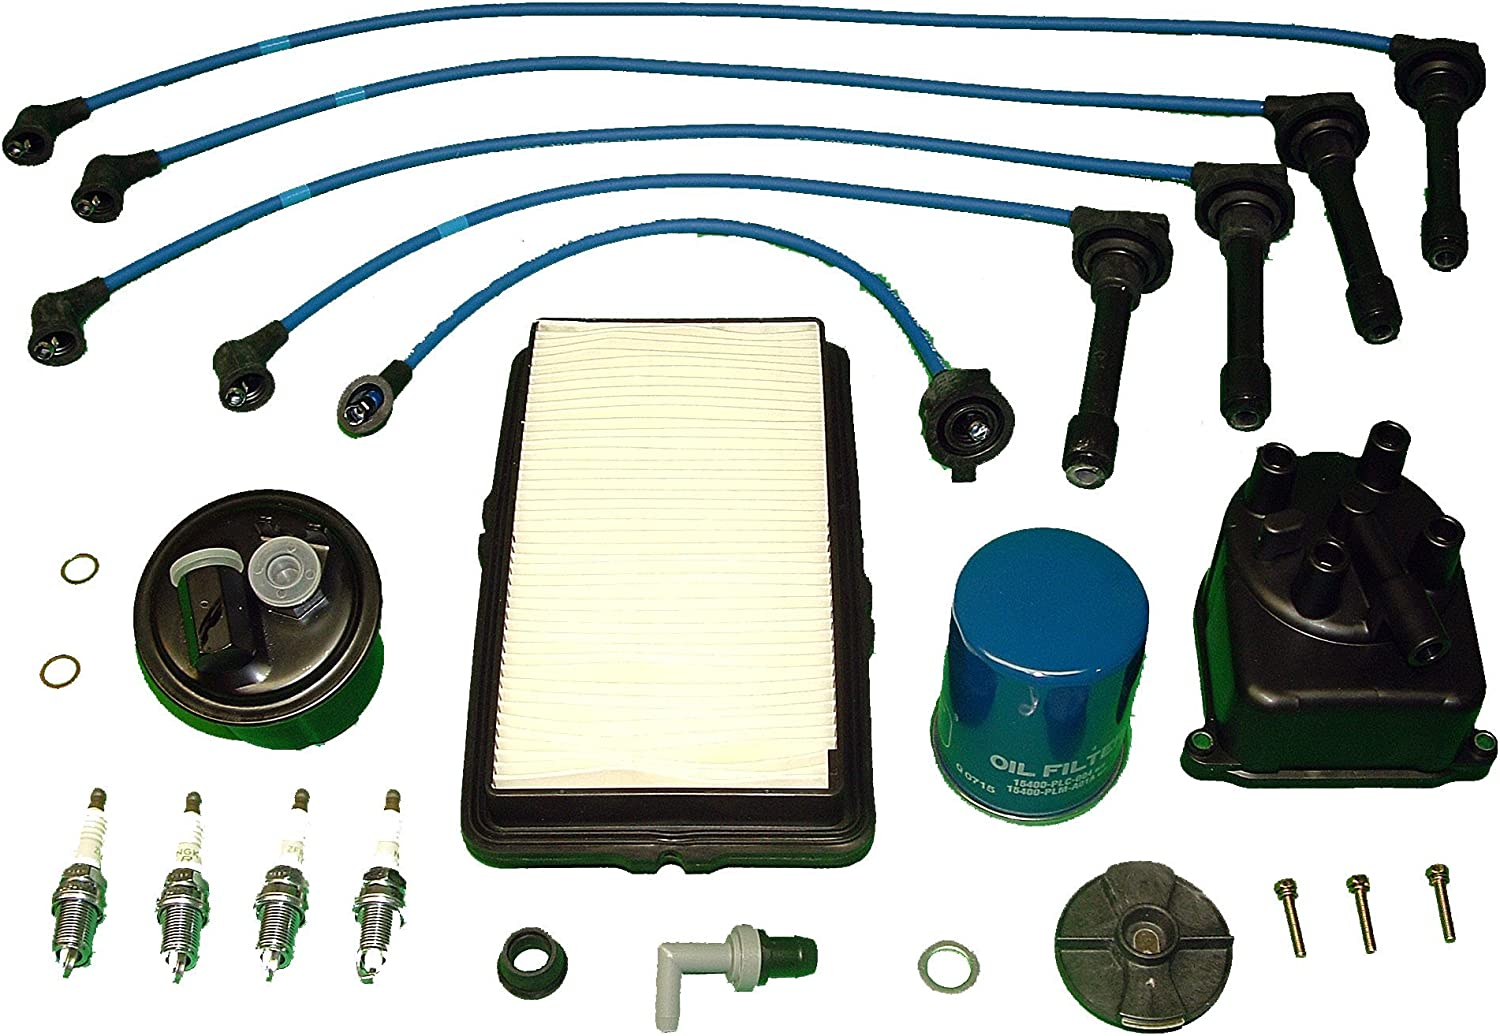 [DIAGRAM_38IU]  Amazon.com: Tune Up Kit Replacement For Honda Accord LX DX EX 1992 1993 oil  air fuel and pcv filters, Japanese distributor cap and ignition rotor NGK  wires and NGK spark plugs: Automotive | 1992 Honda Fuel Filter Located |  | Amazon.com